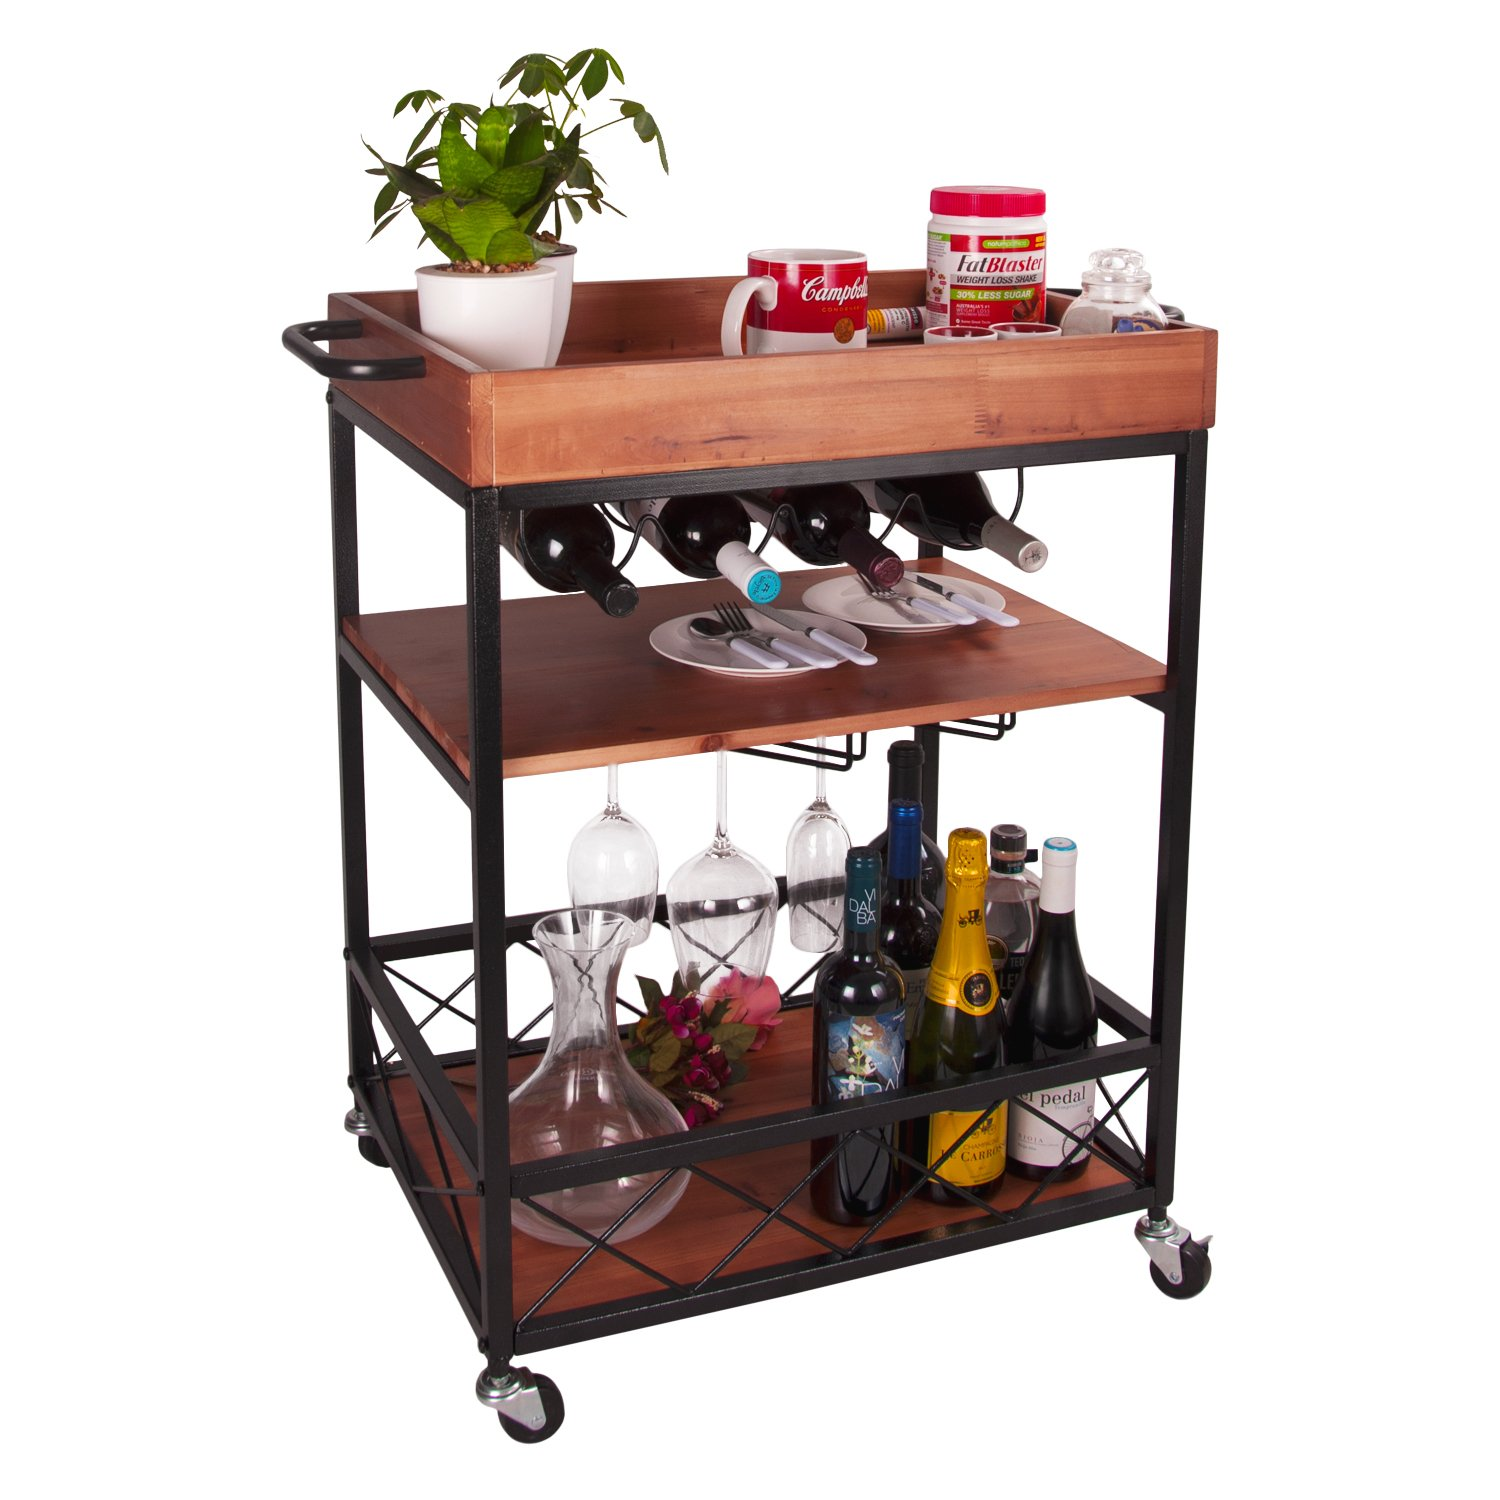 Solid Wood Meta Bar and Serving Cart with Wheels- Industrial Style Rolling Storage Cabinet Trolley - Kitchen Bar Dining Room Tea Wine Rack with Wine and Bottle Holder by Elevens